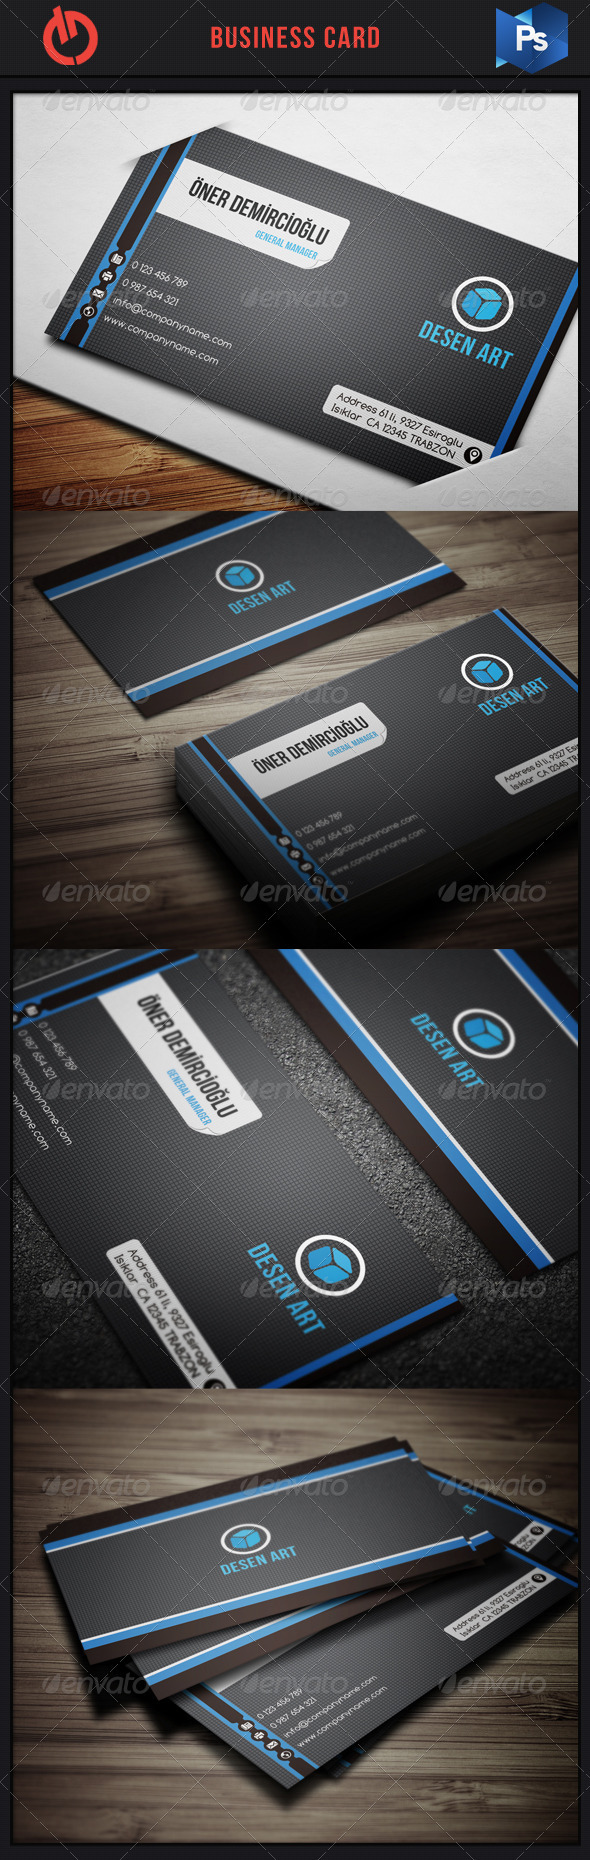 GraphicRiver Business Card 13 3591607